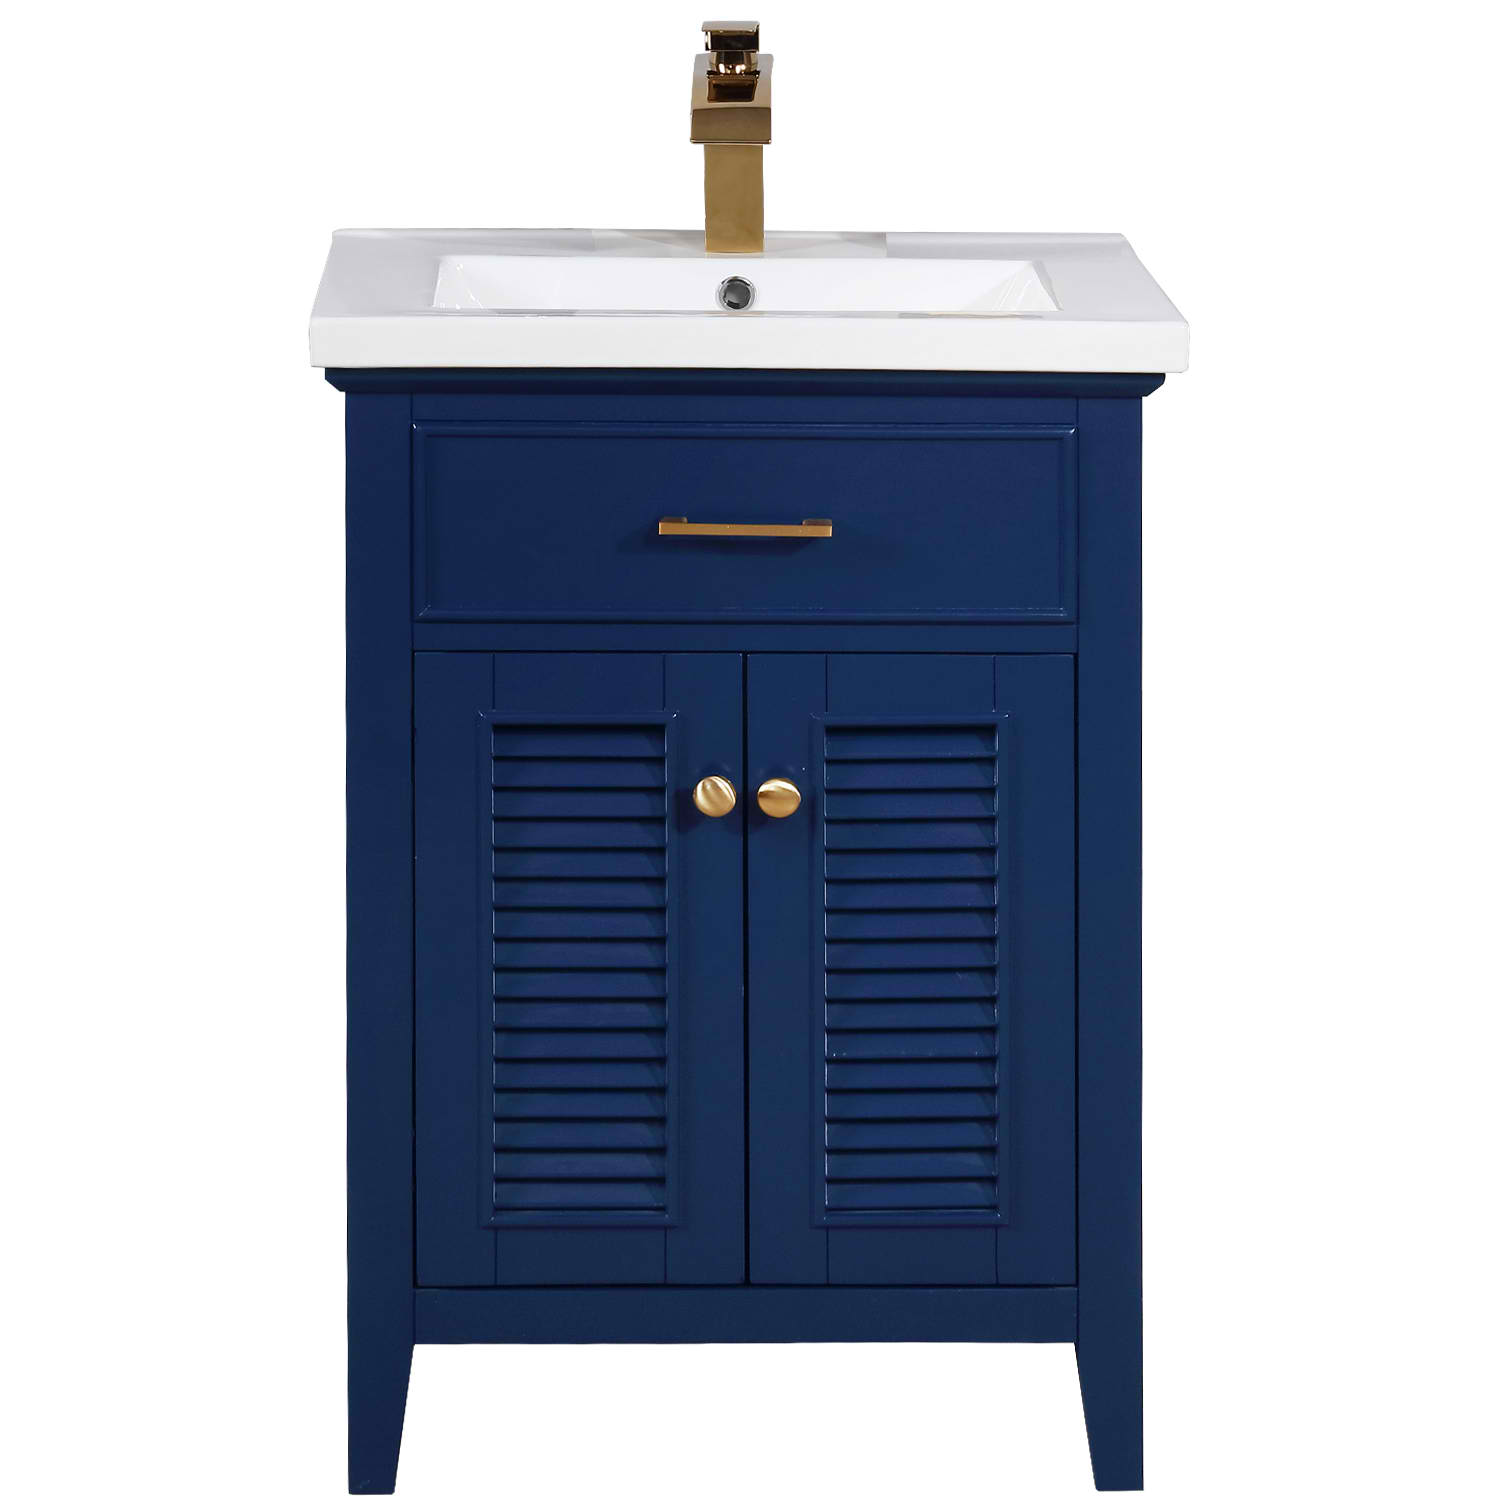 "Transitional 24"" Single Sink Bathroom Vanity with Porcelain Integrated Counterop in Blue Finish"